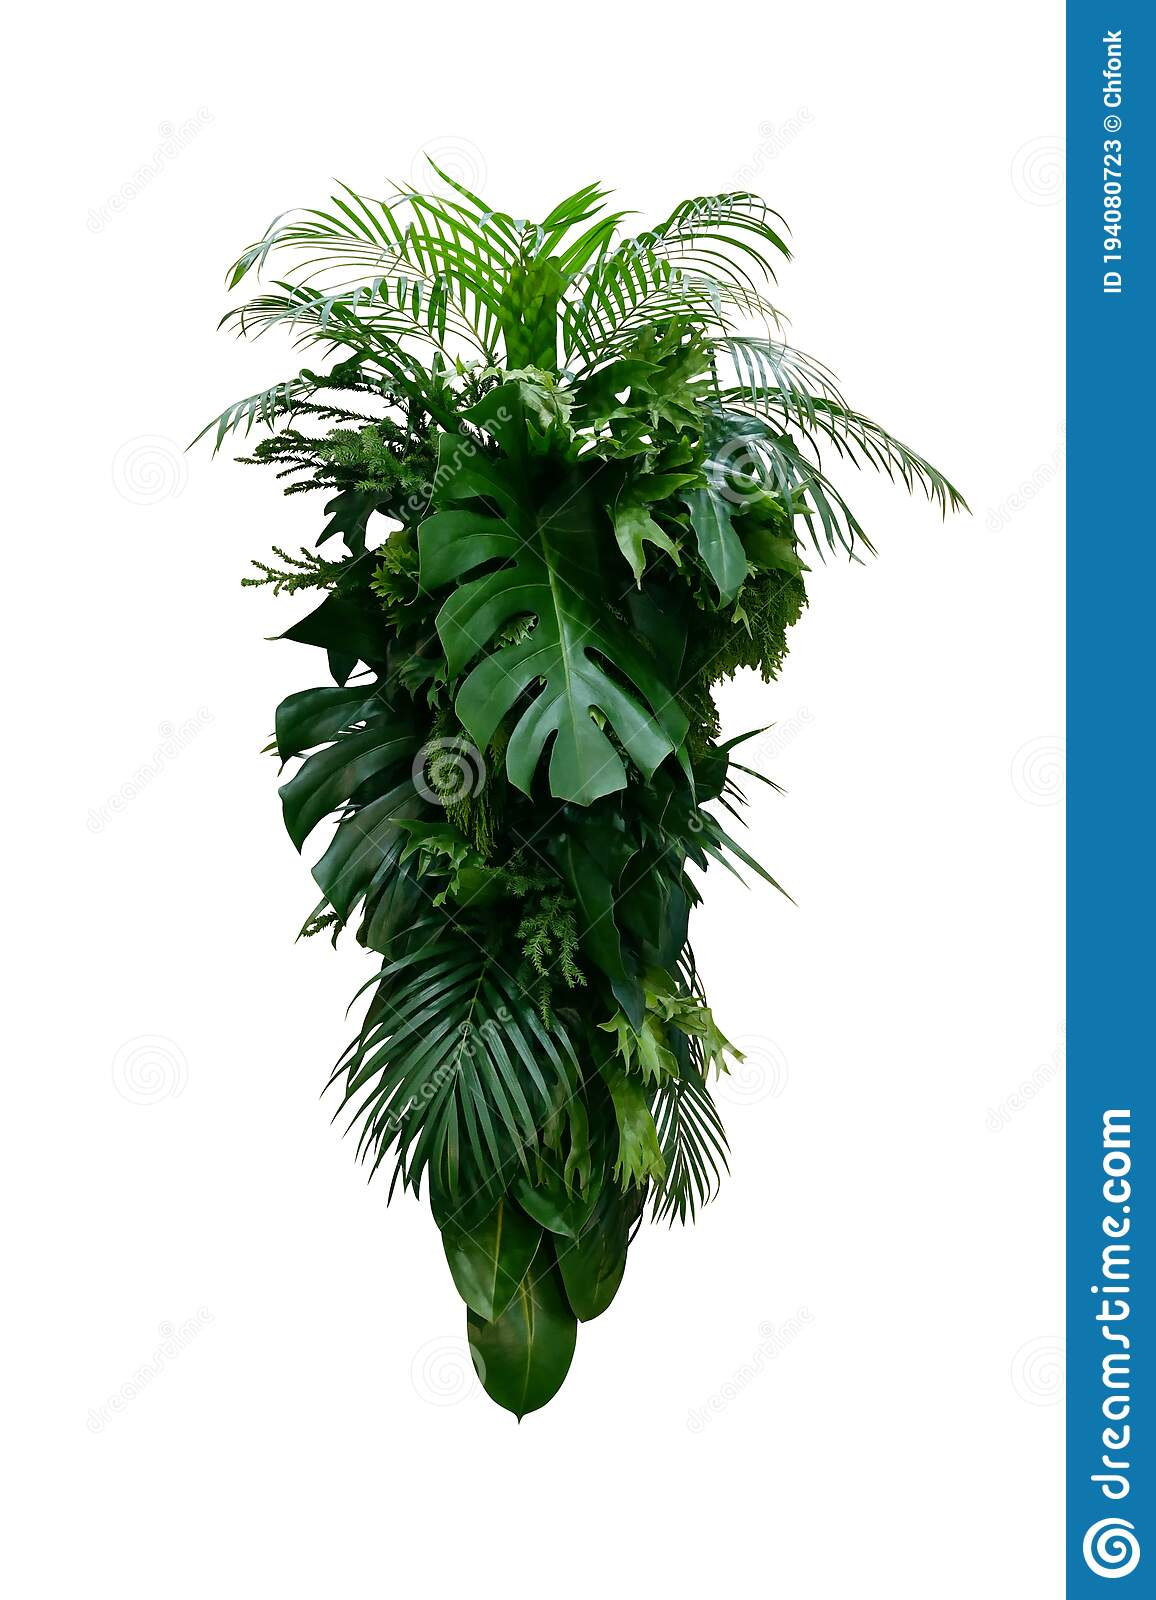 Tropical Leaves Foliage Plants Bush Monstera Palm Rubber Plant Pine Fern And Philodendron Leaves Floral Arrangement Indoors Stock Image Image Of Leaf Border 194080723 They ship well and last a very long time in your arrangements. dreamstime com